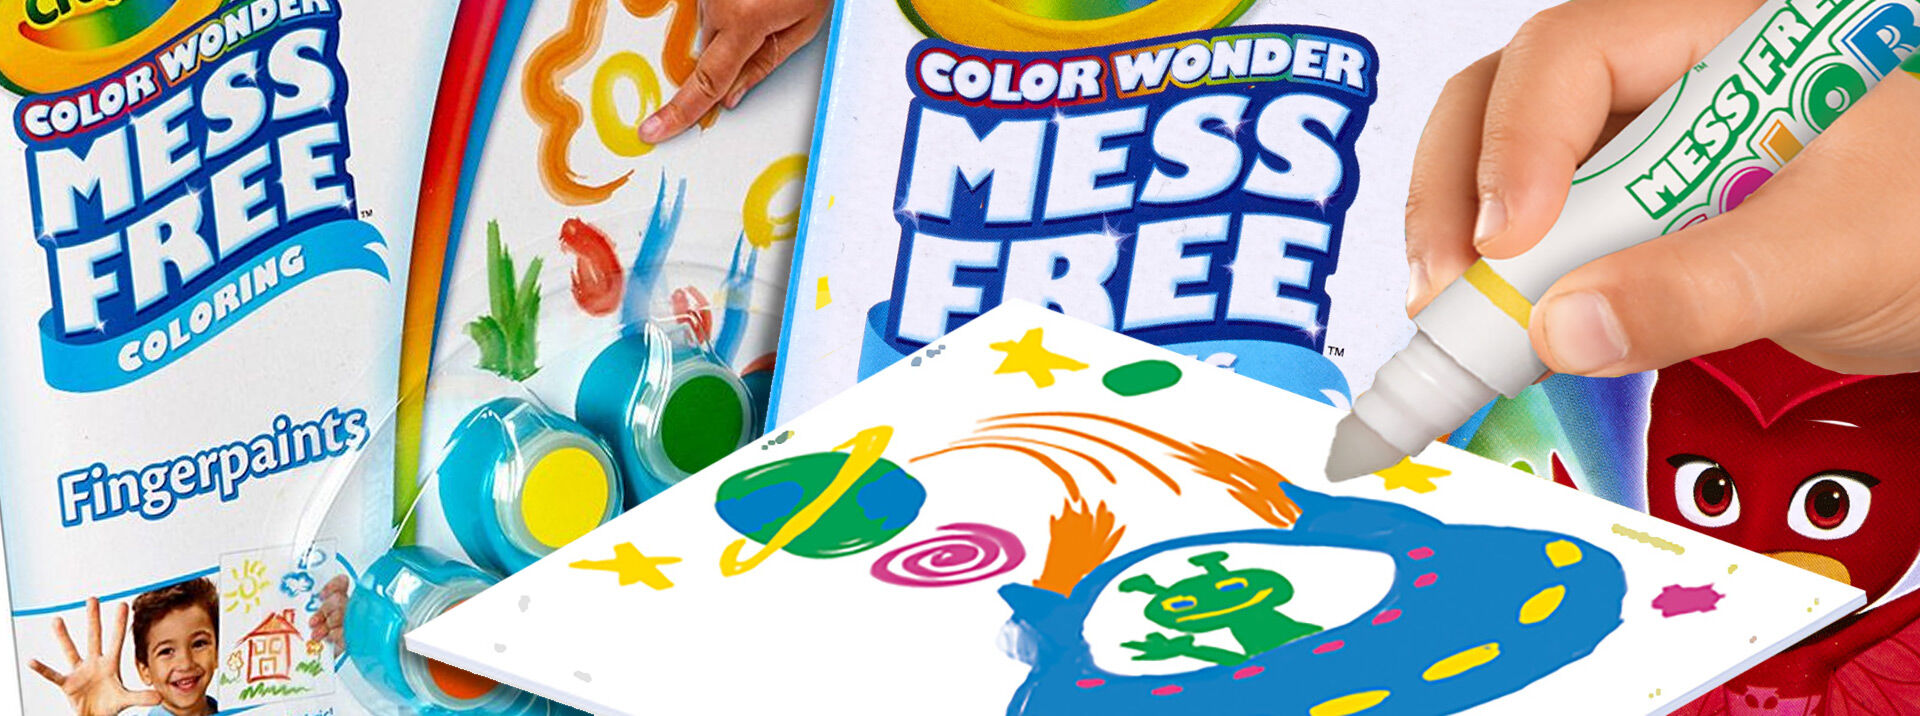 mess free coloring - Color Wonder Coloring Books